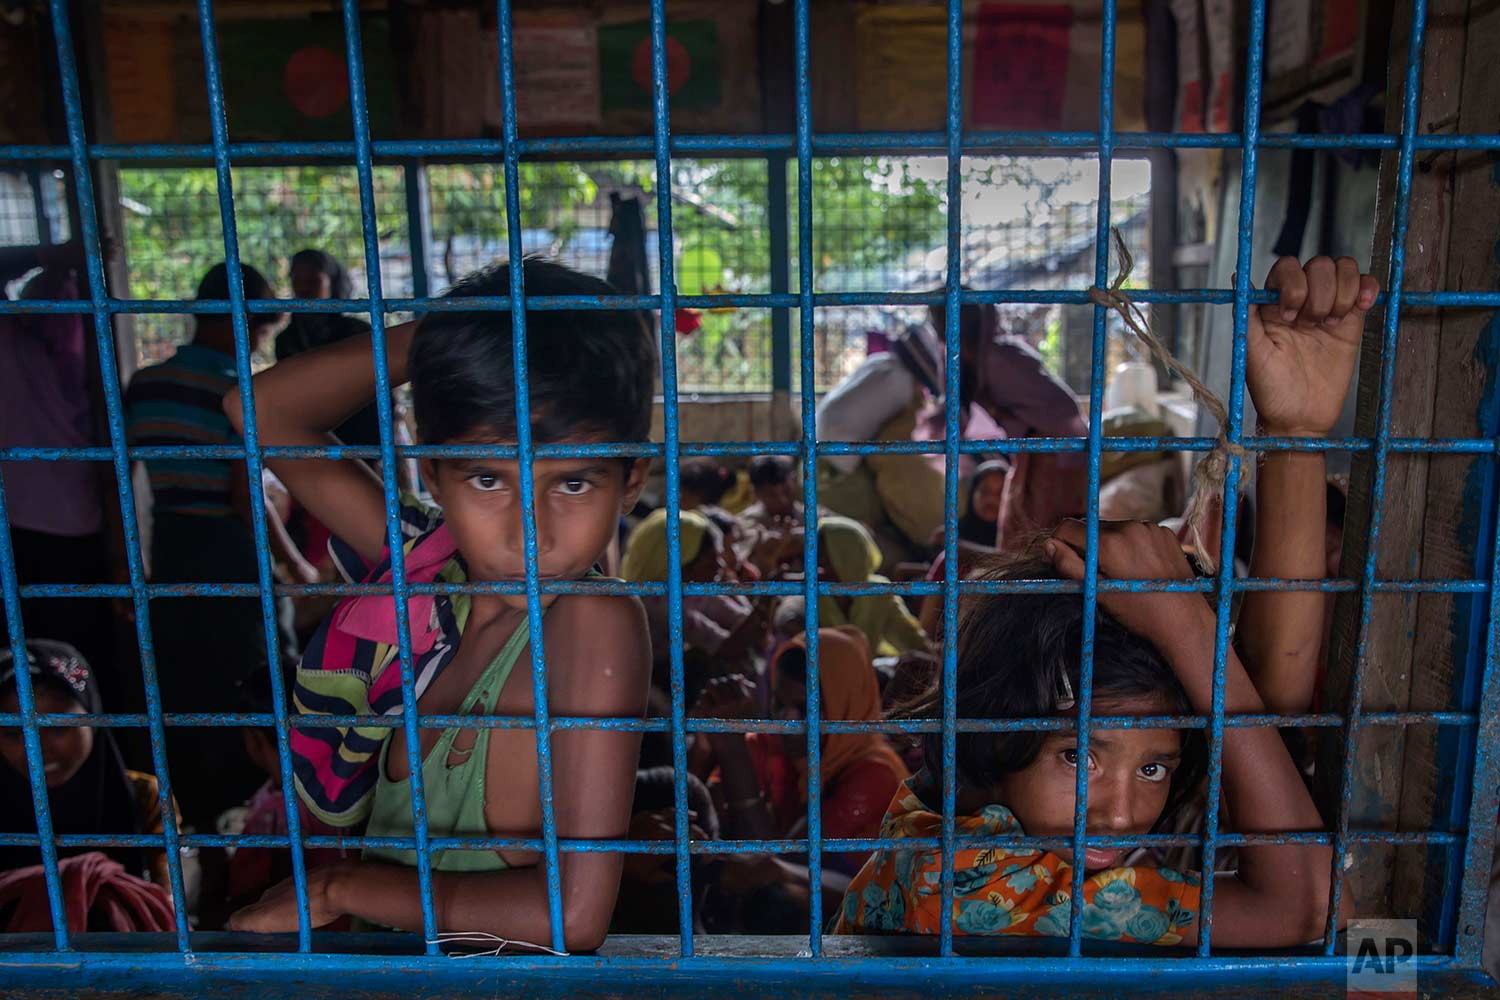 Rohingya Muslim children, who crossed over from Myanmar into Bangladesh, wait inside a classroom for their families to be registered as refugees after which they will be allowed to proceed to build a shelter in Kutupalong refugee camp, Bangladesh, Friday, Oct. 20, 2017. (AP Photo/Dar Yasin)